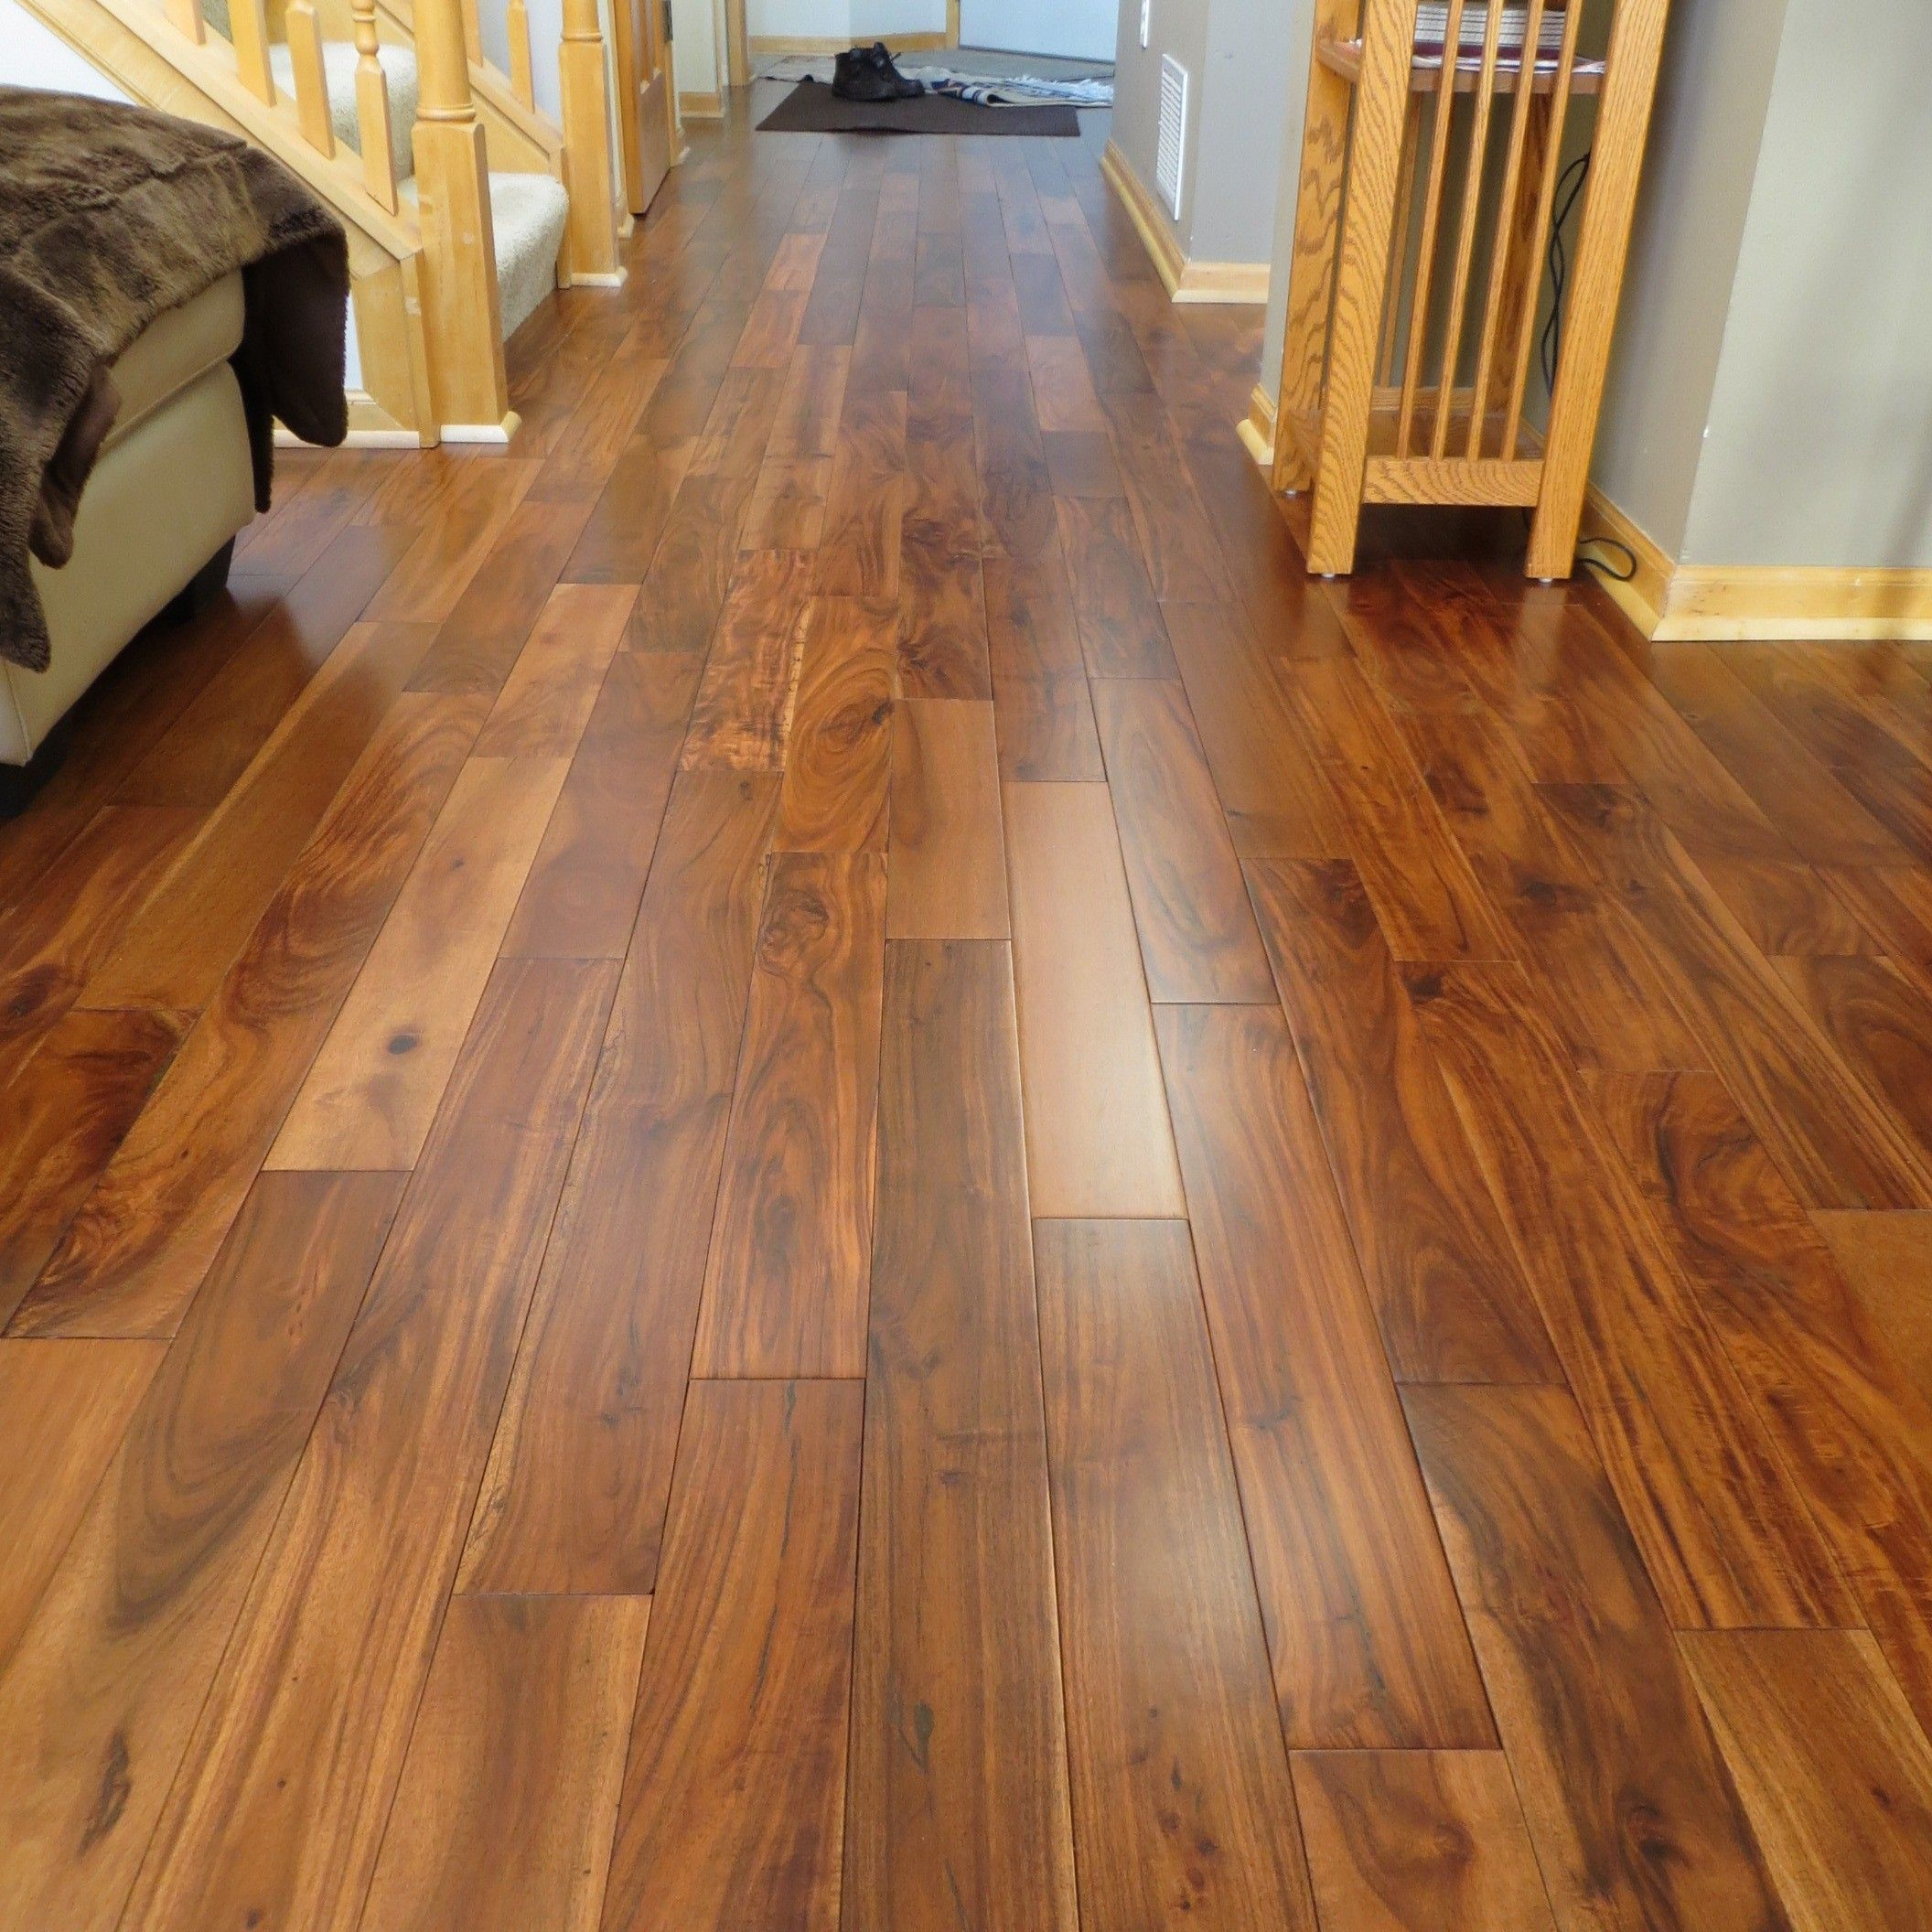 Acacia Bronze Plank | Hardwood floors, Acacia wood ...